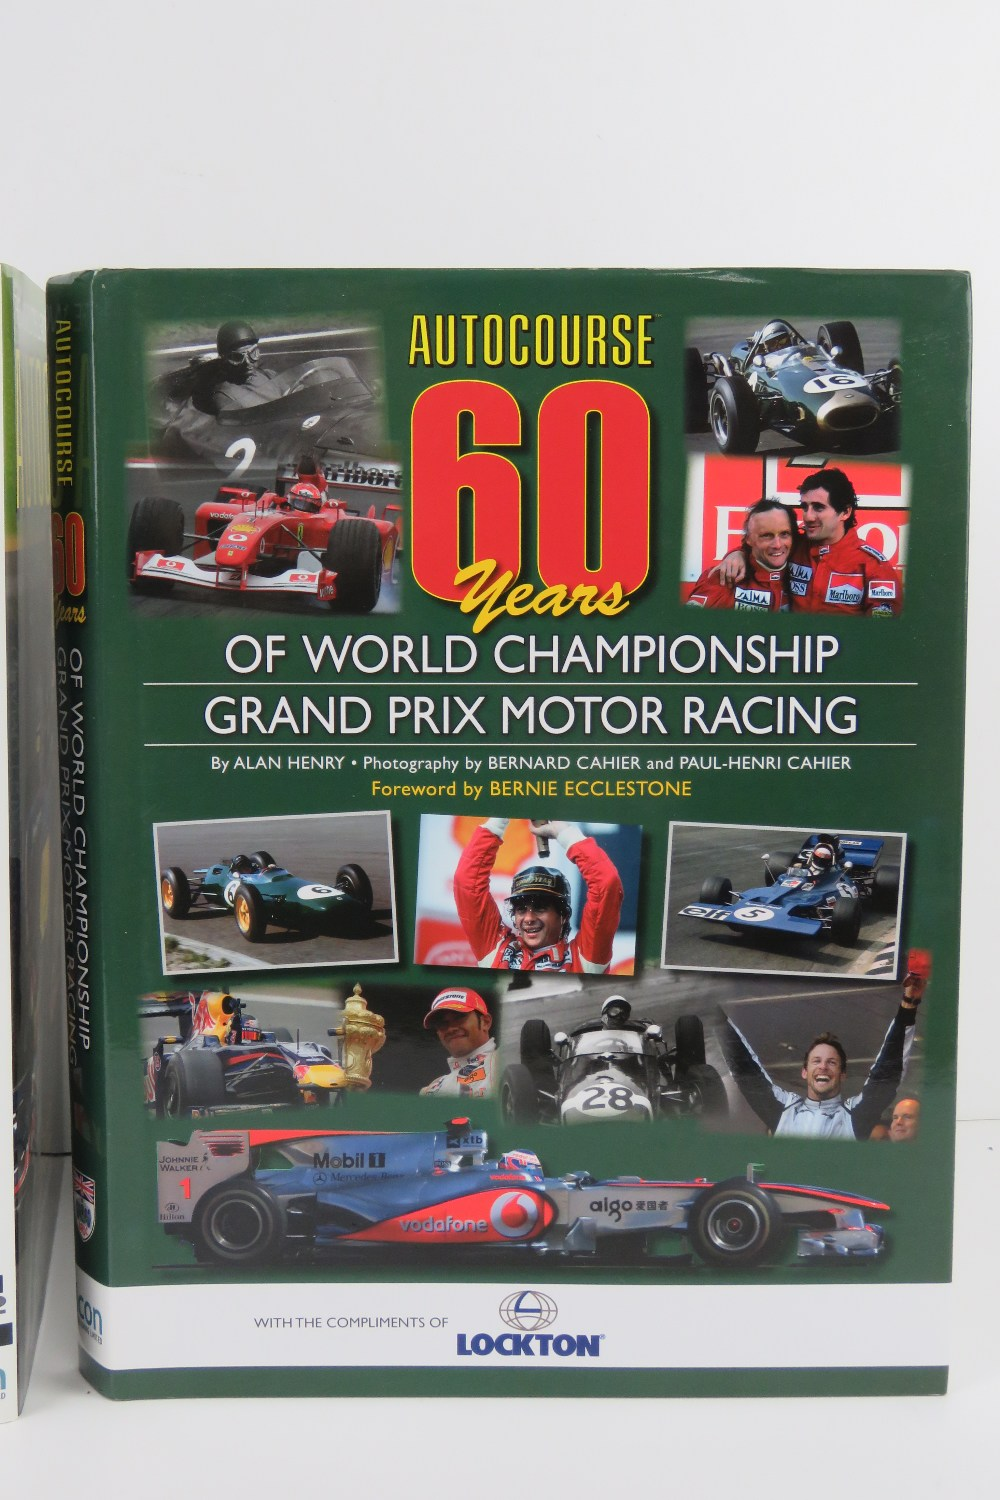 Autocourse Annuals; 1979-80, 1982-3, 1987-88, 1990-91, 2006-7, and 2011-12. Six hardback editions. - Image 3 of 3